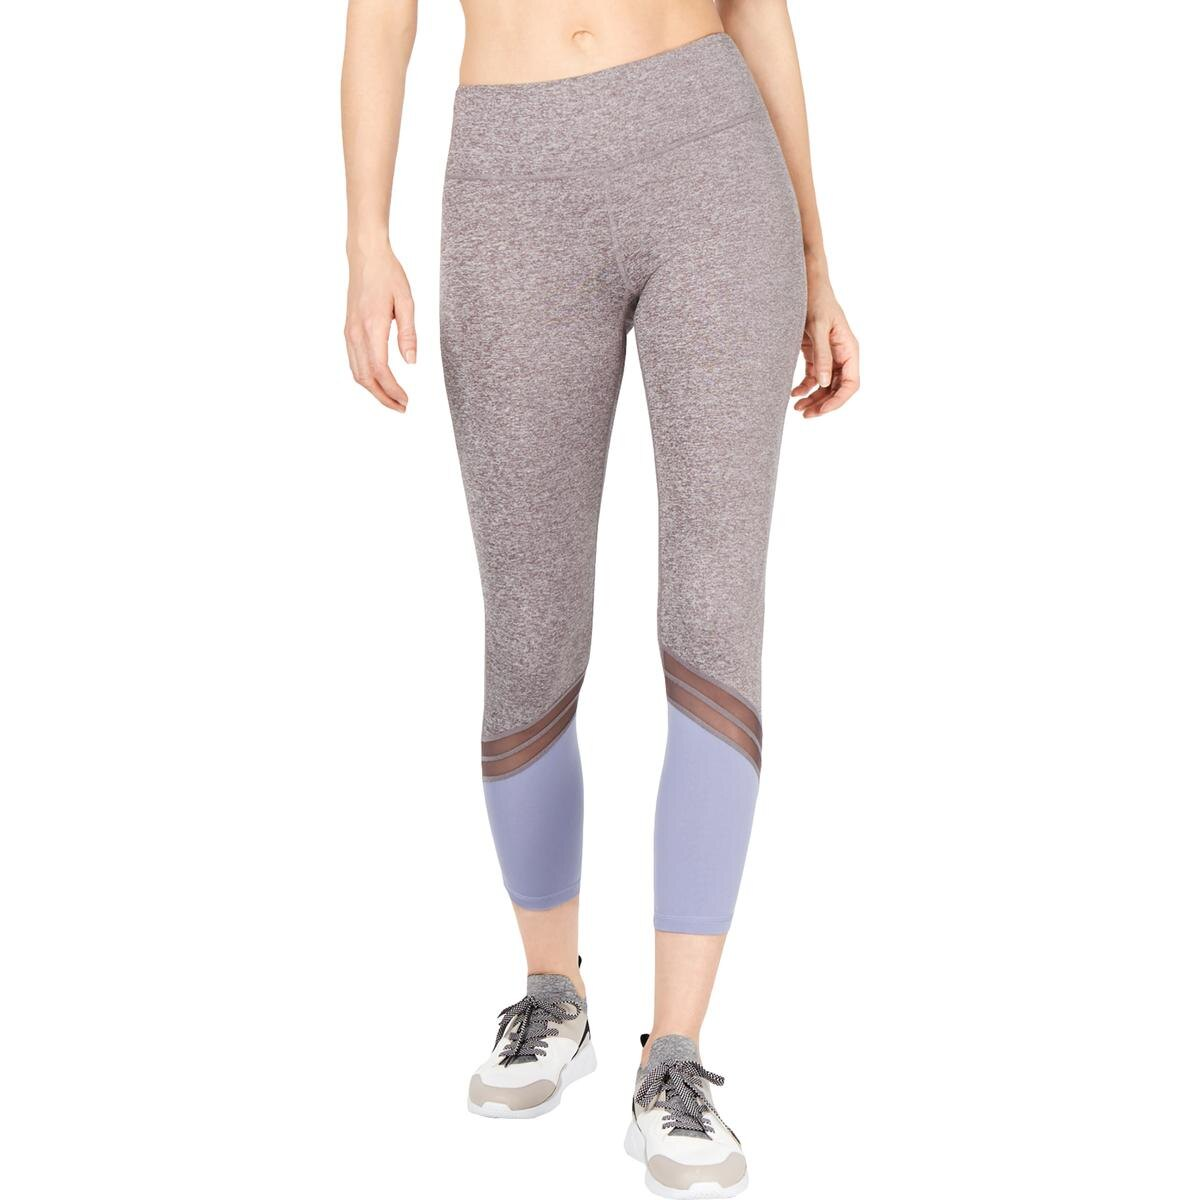 Ideology 7/8 Colorblocked Leggings